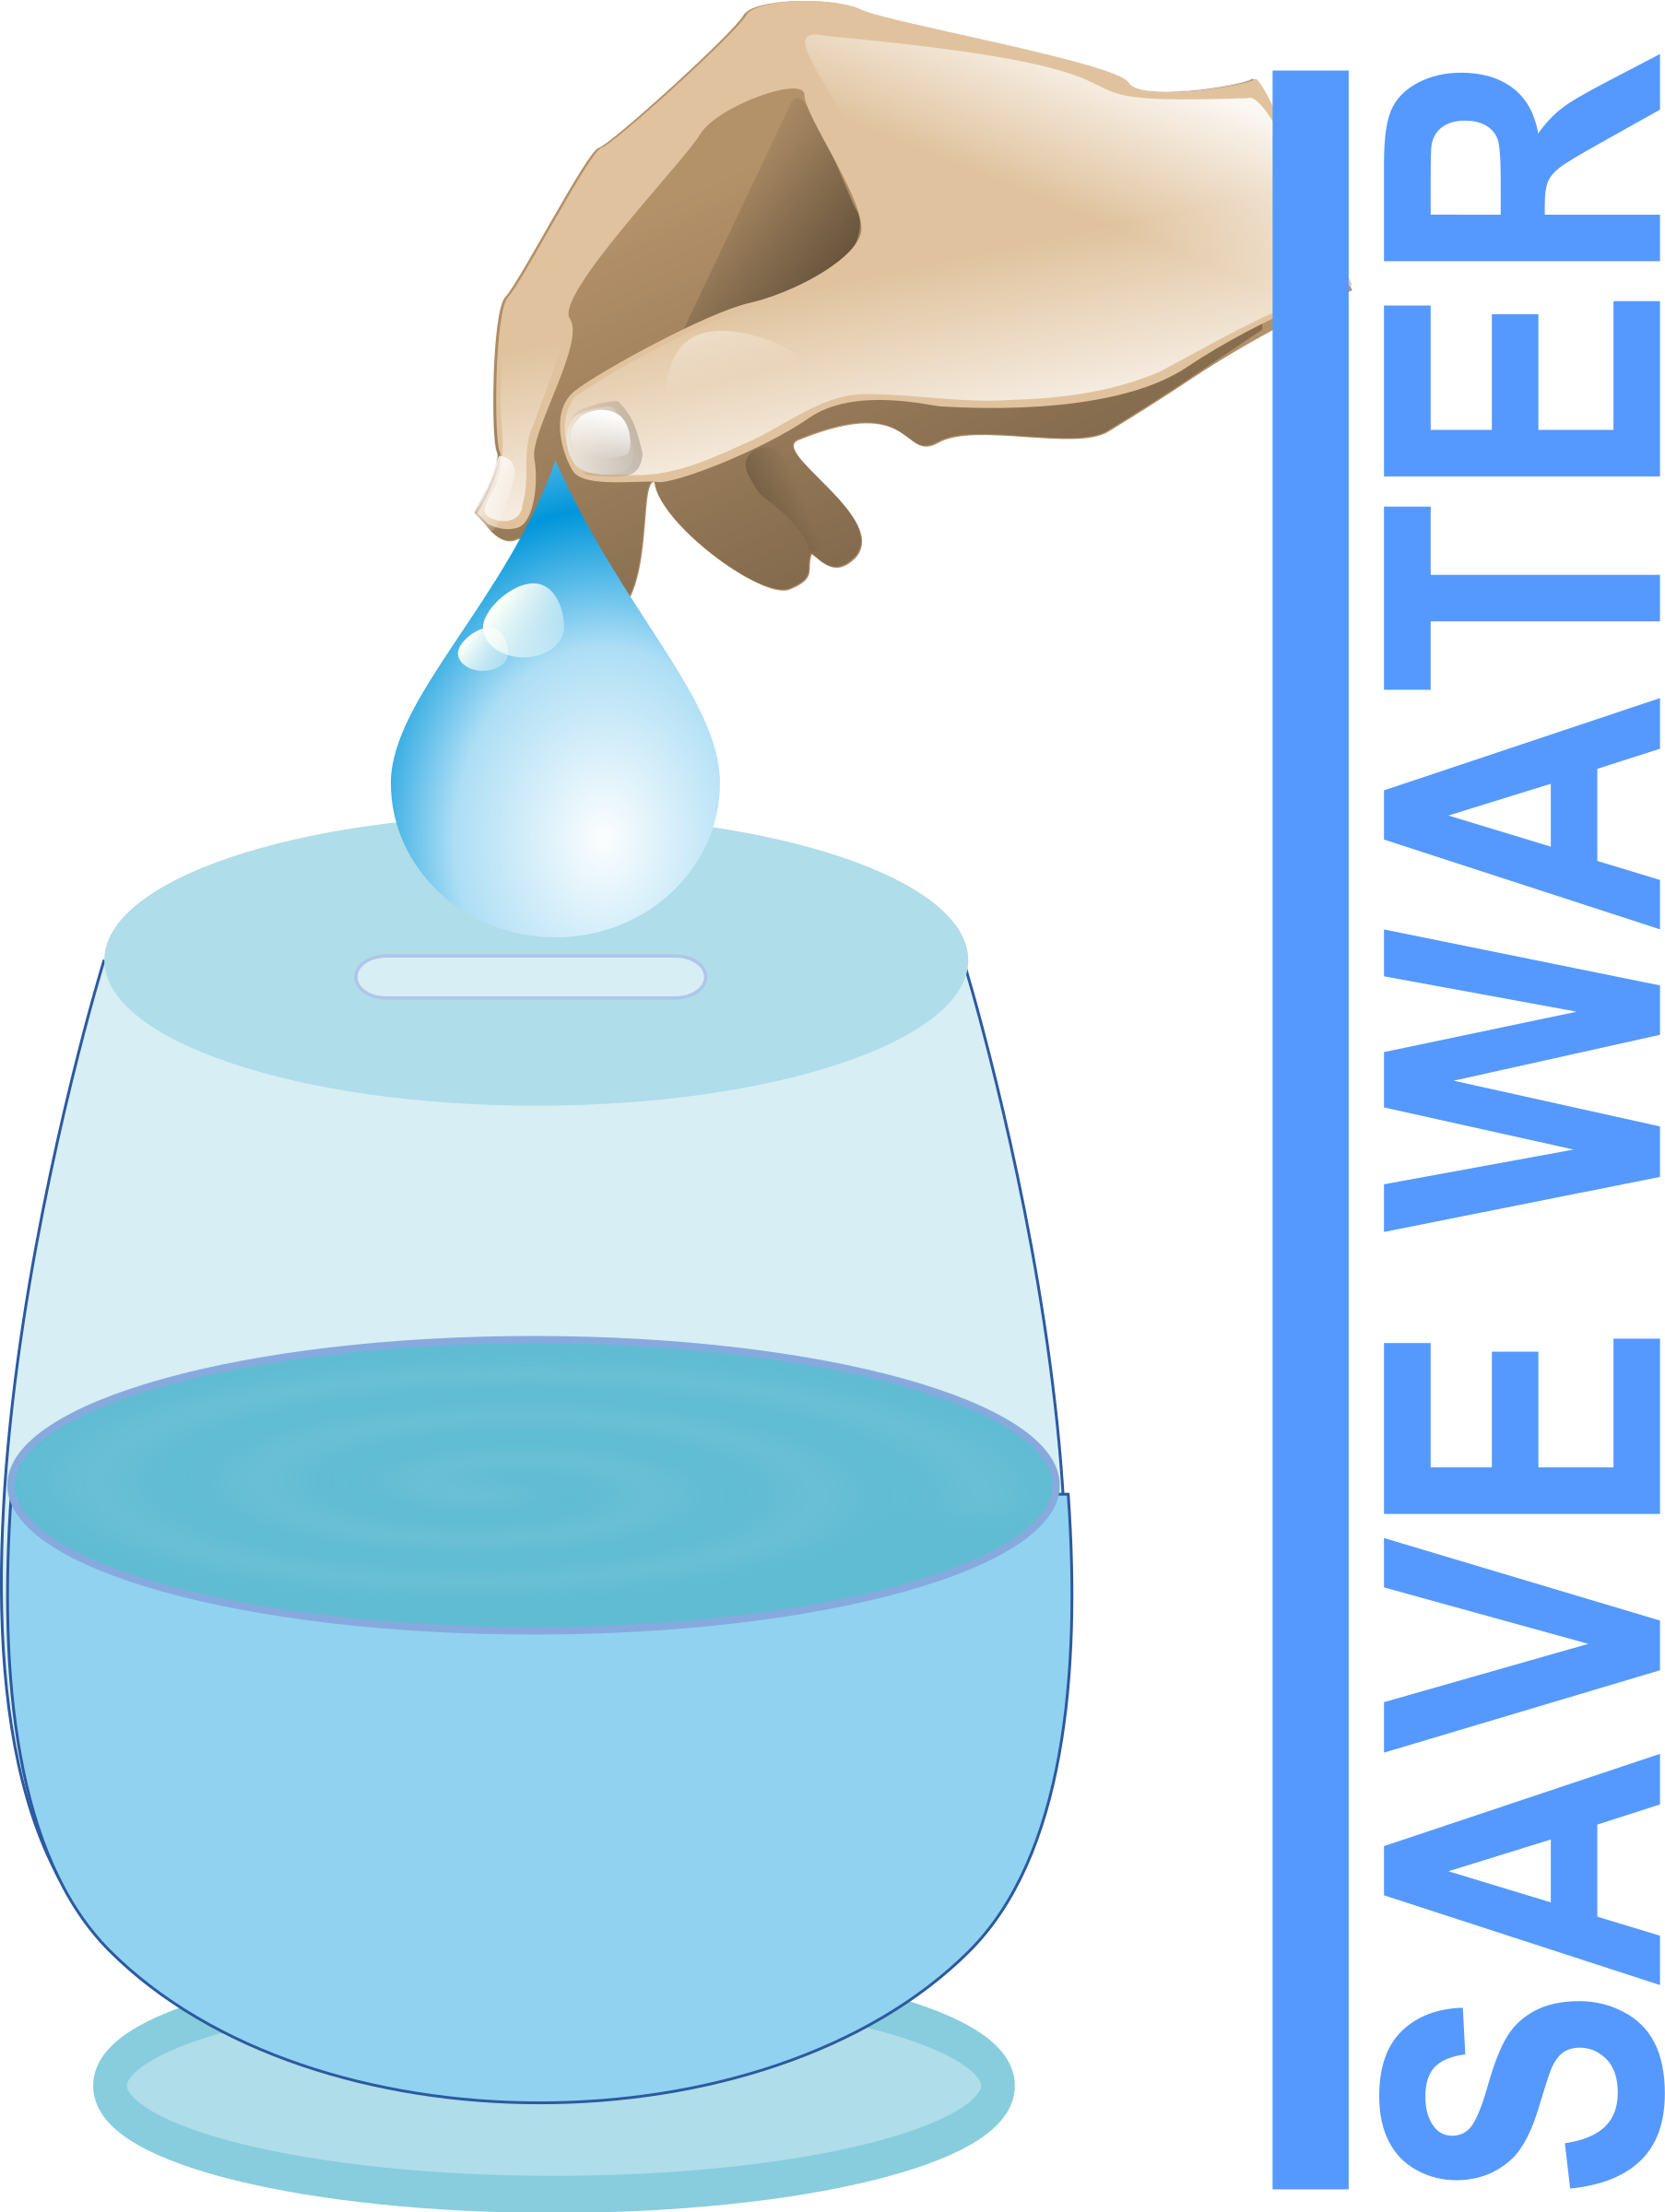 Water Droplets clipart precious #4